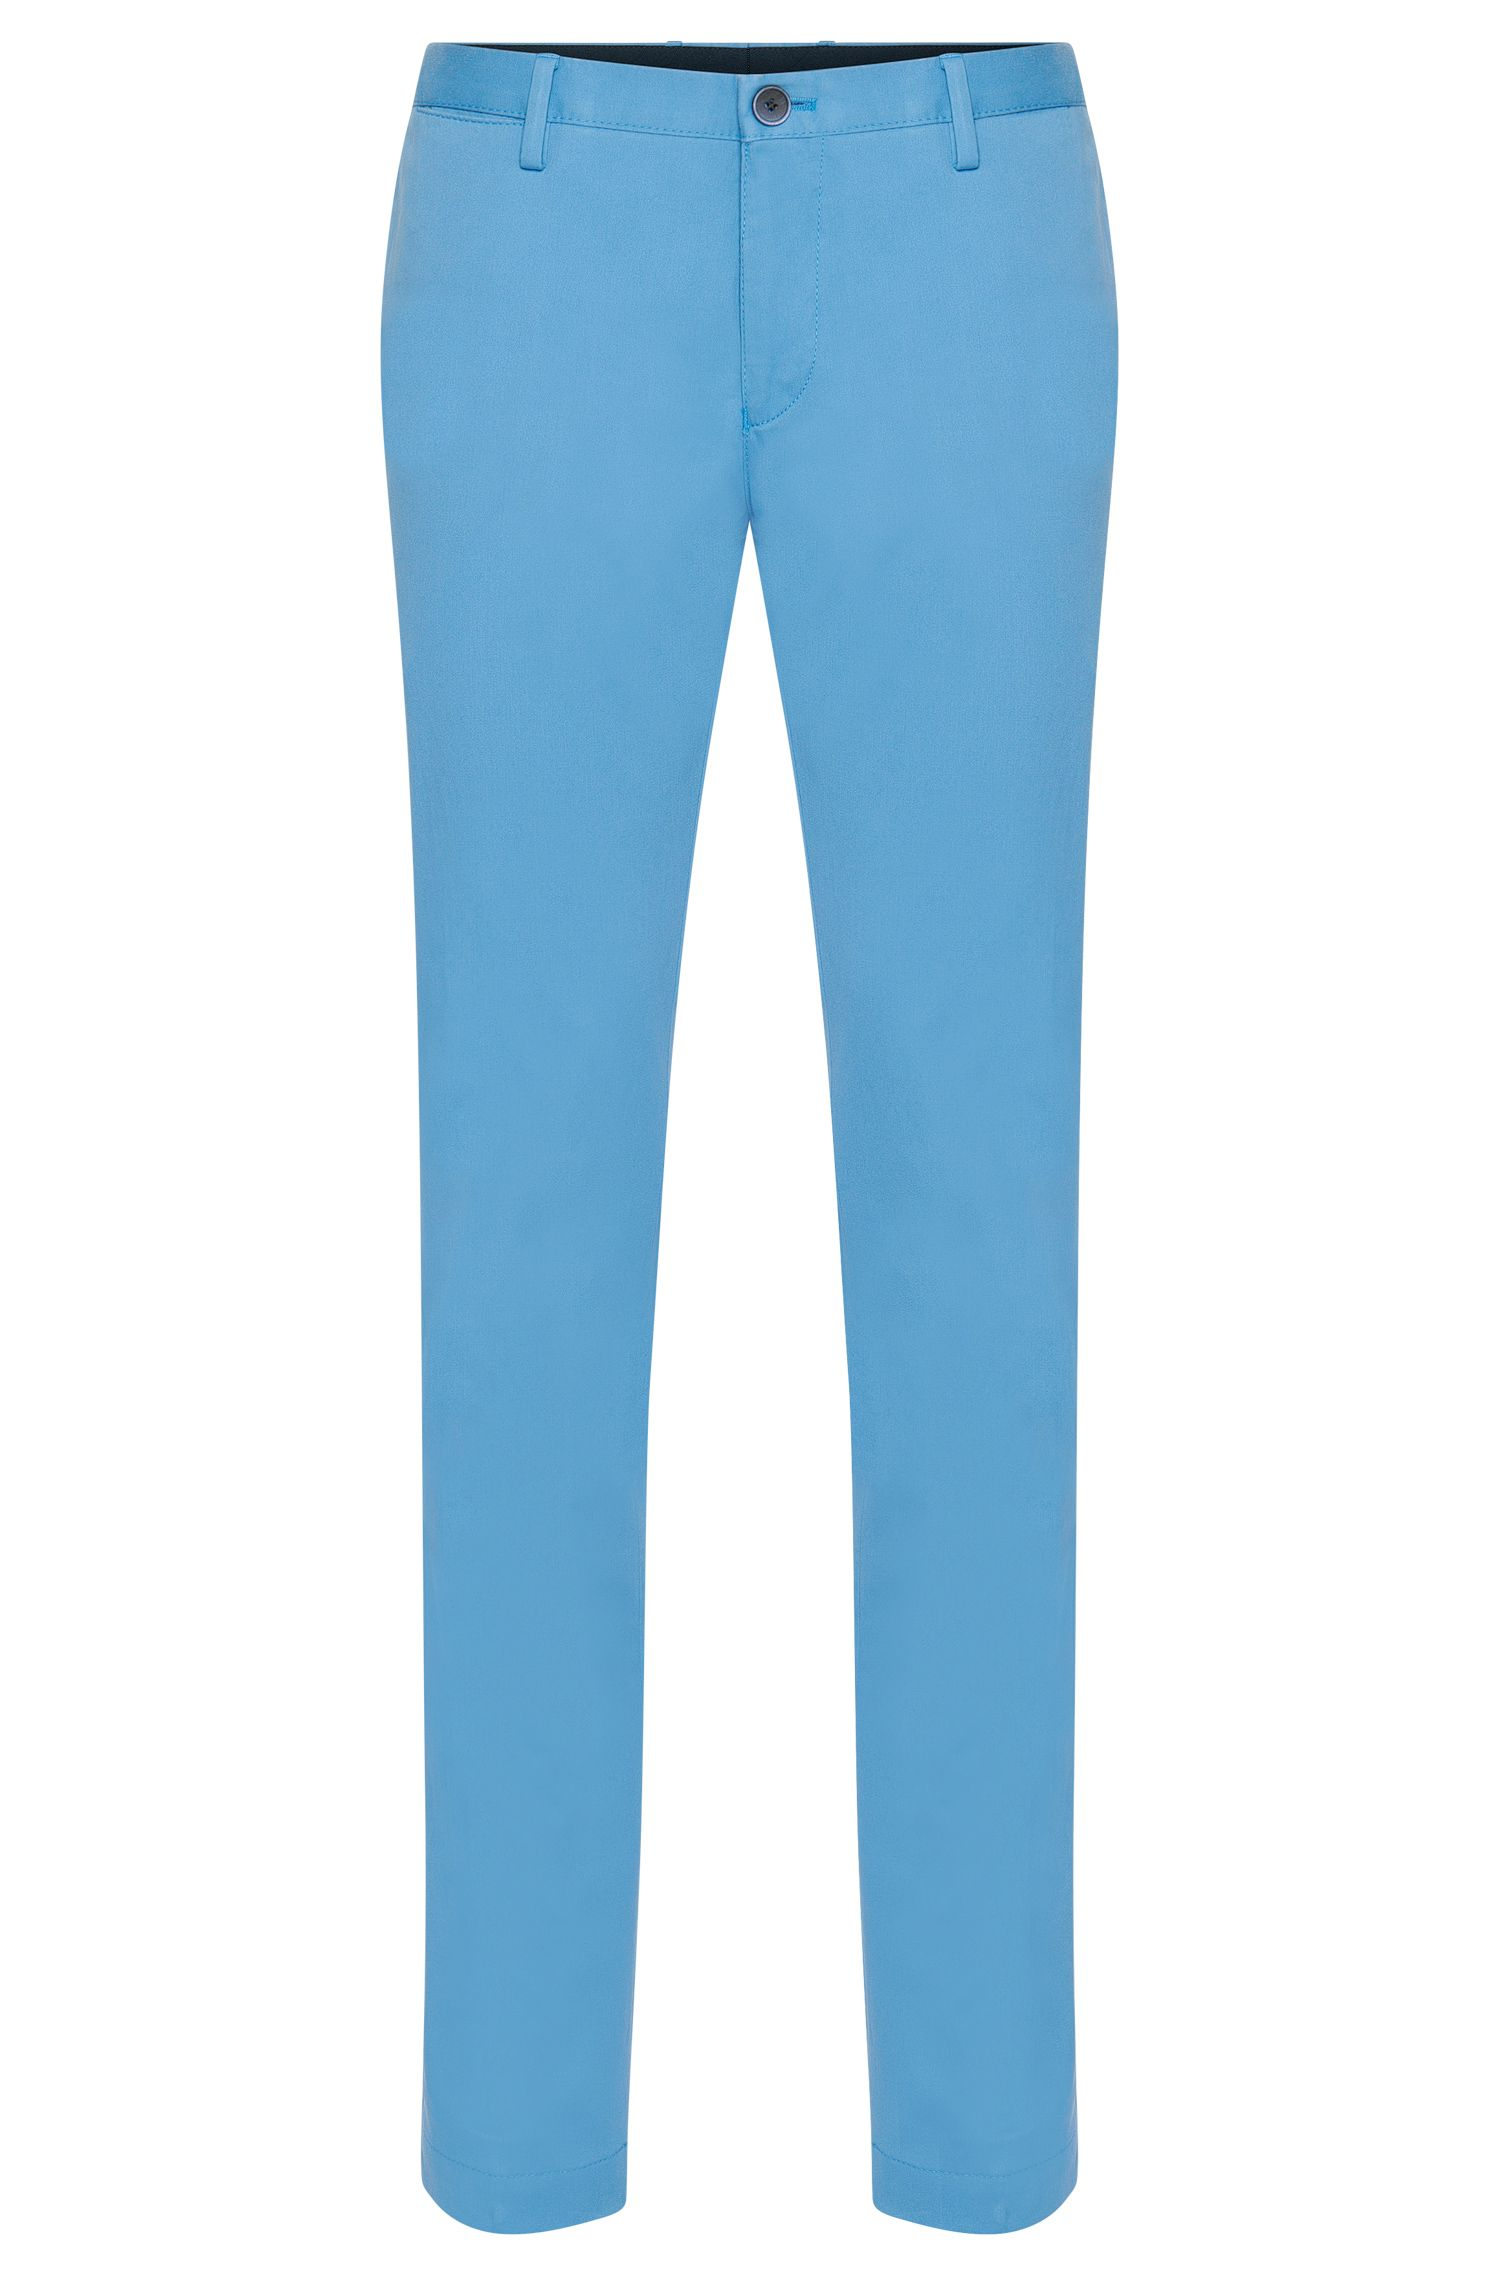 'Stanino W' | Slim Fit, Stretch Cotton Chino Pants